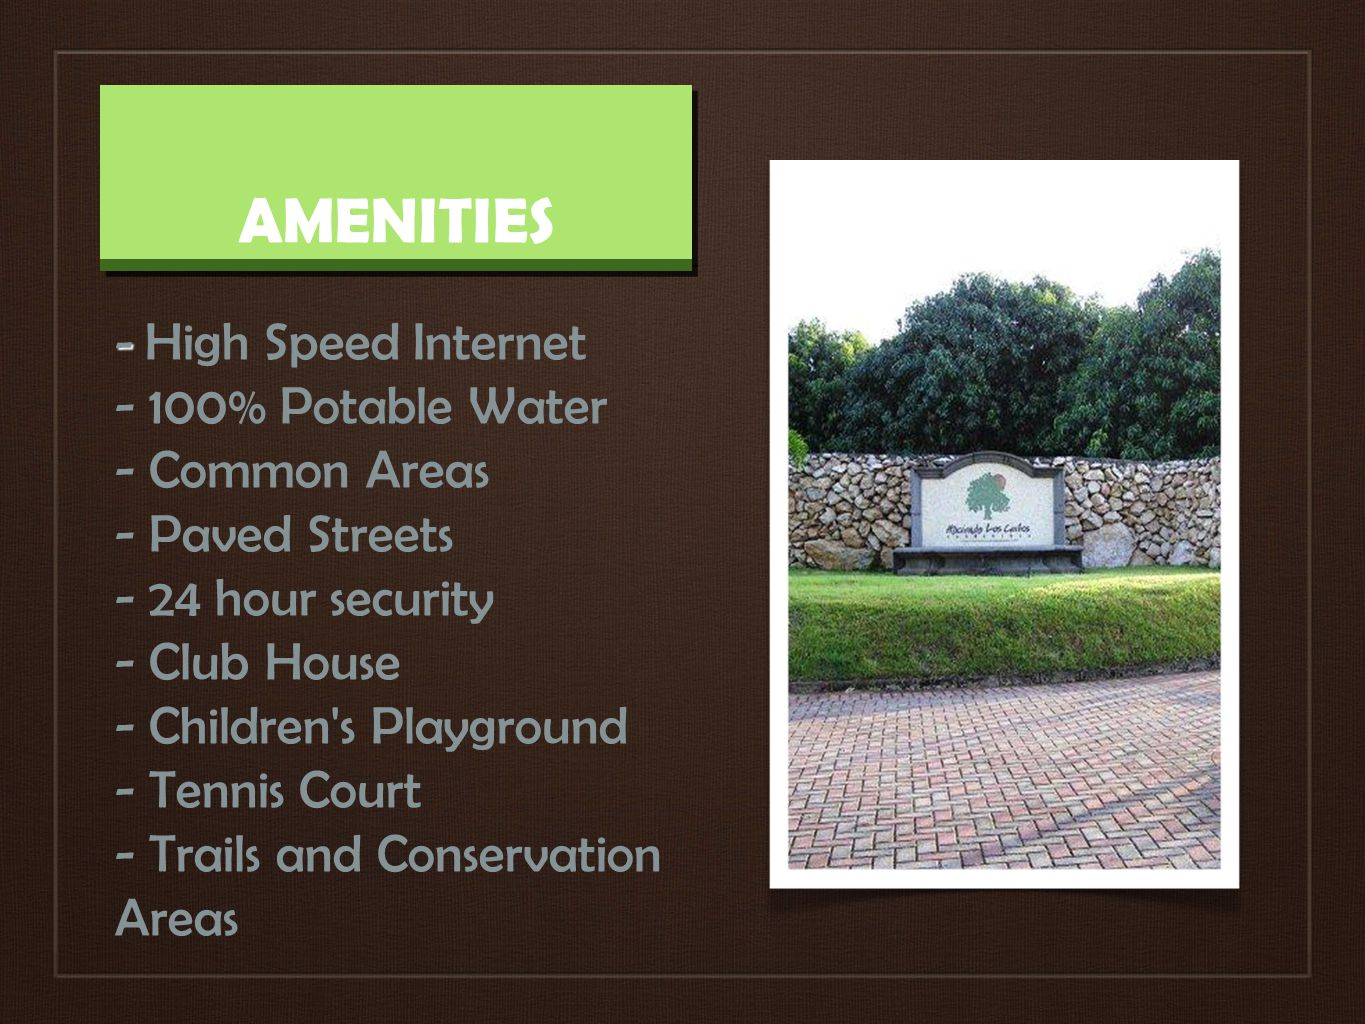 AMENITIES - - High Speed ​​ Internet - 100% Potable Water - Common Areas - Paved Streets - 24 hour security - Club House - Children s Playground - Tennis Court - Trails and Conservation Areas